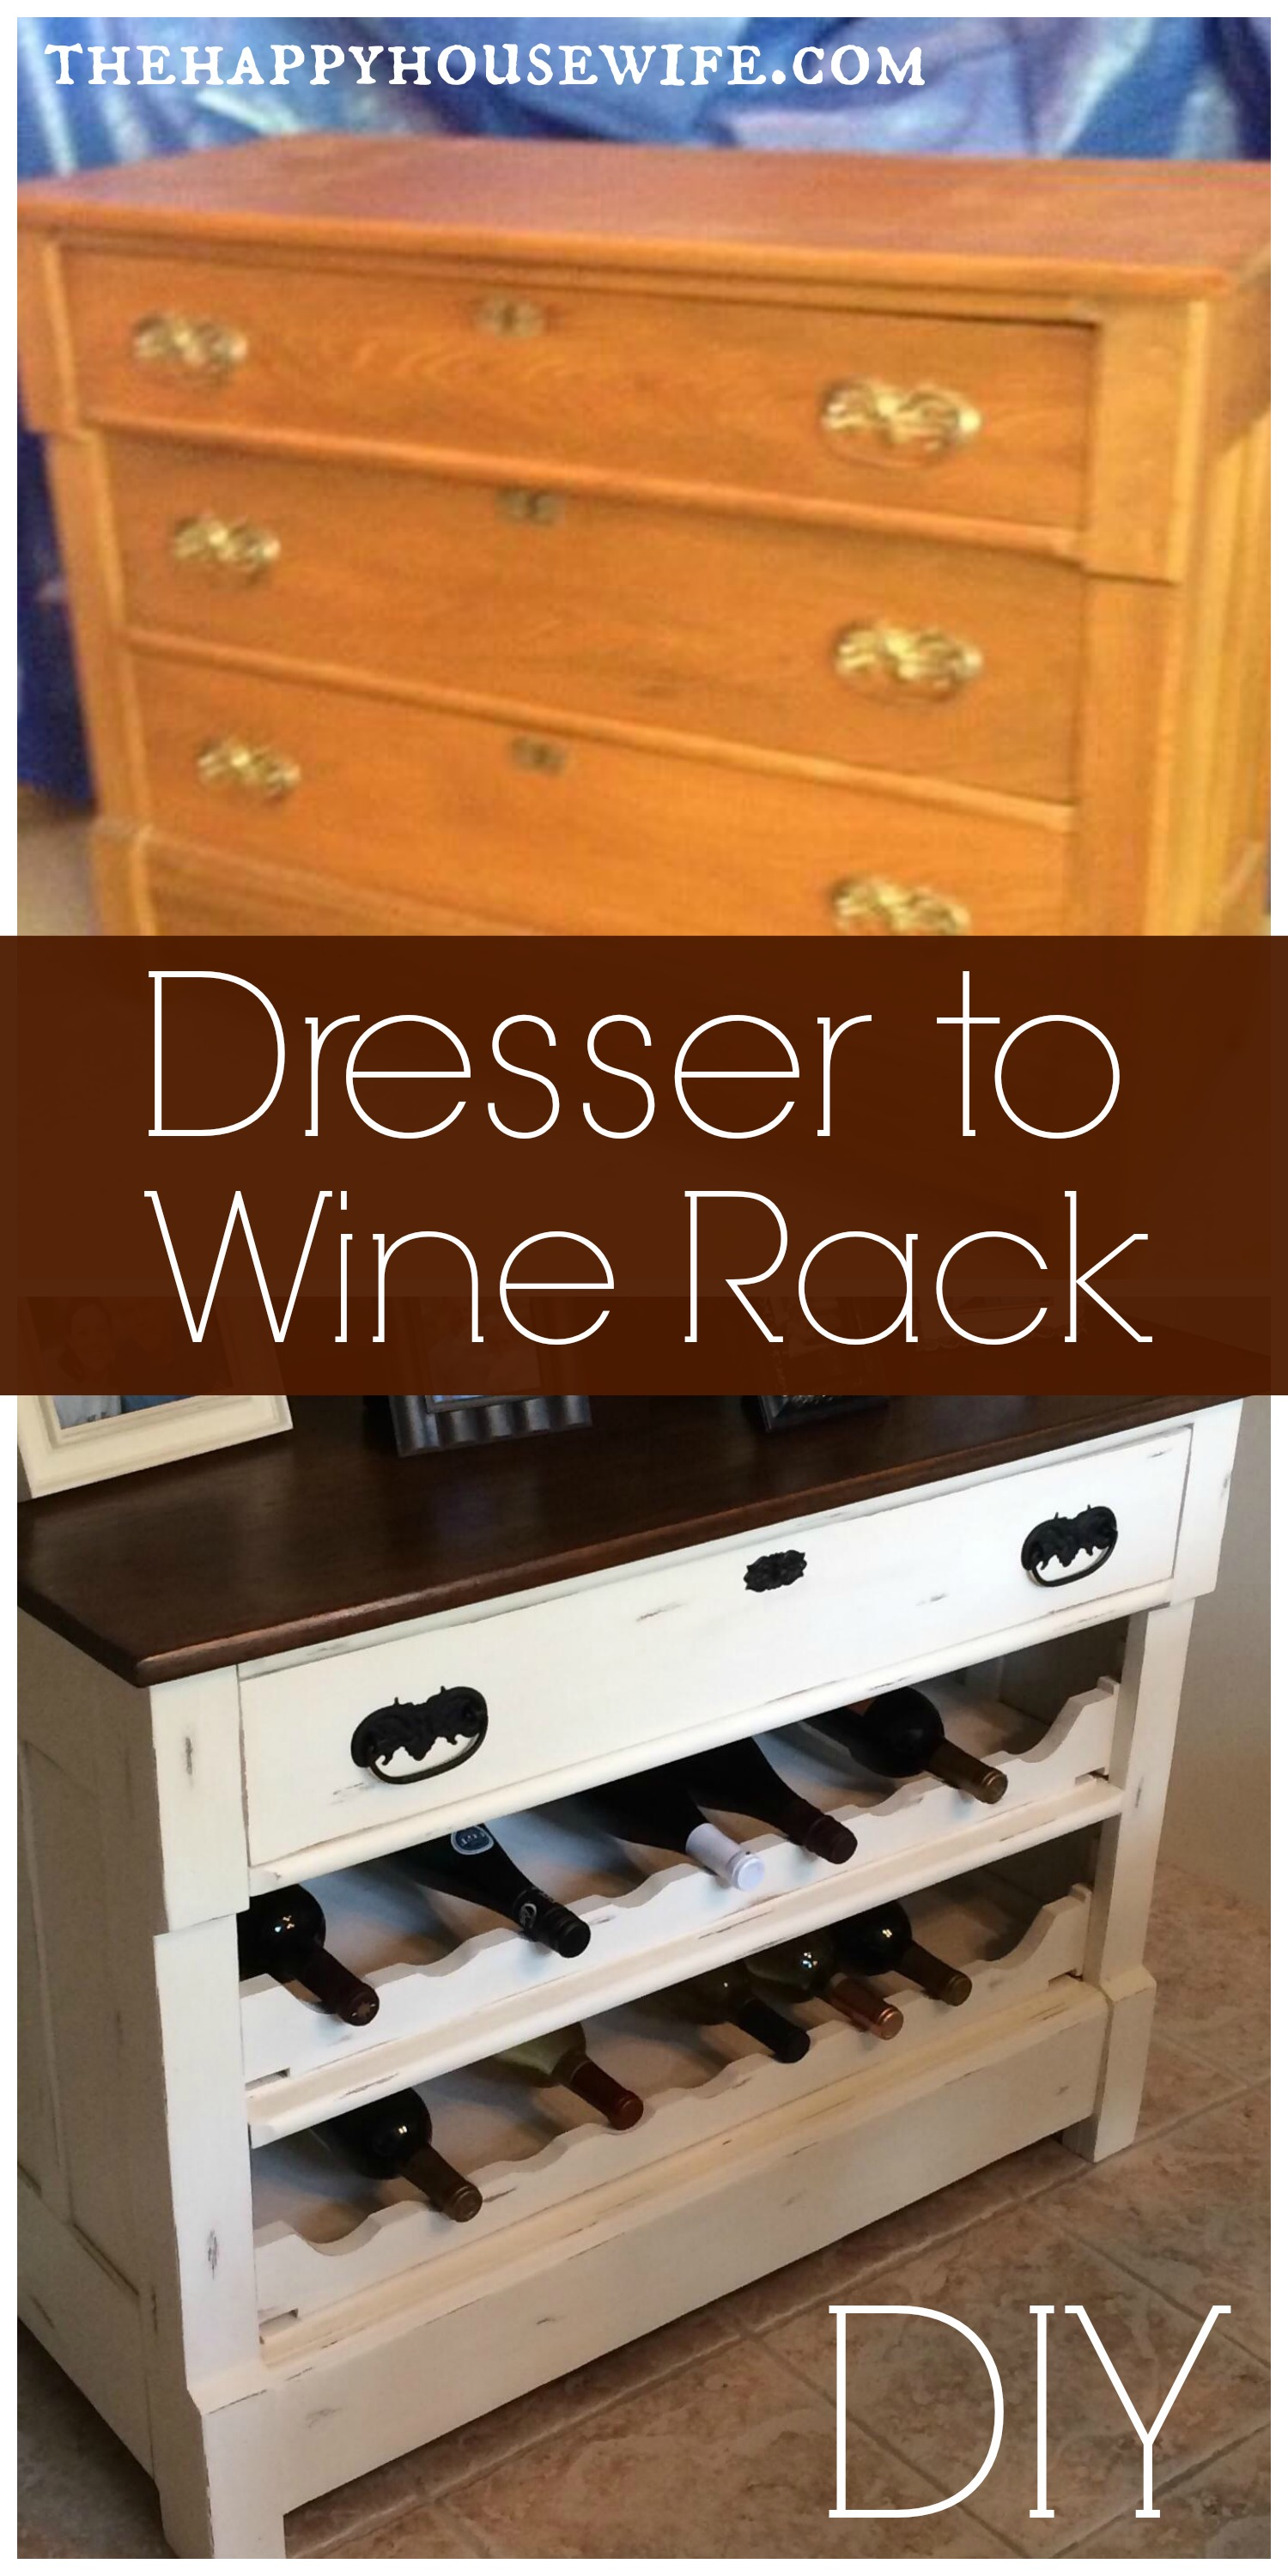 Dresser to Wine Rack DIY - The Happy Housewife™ :: Home Management